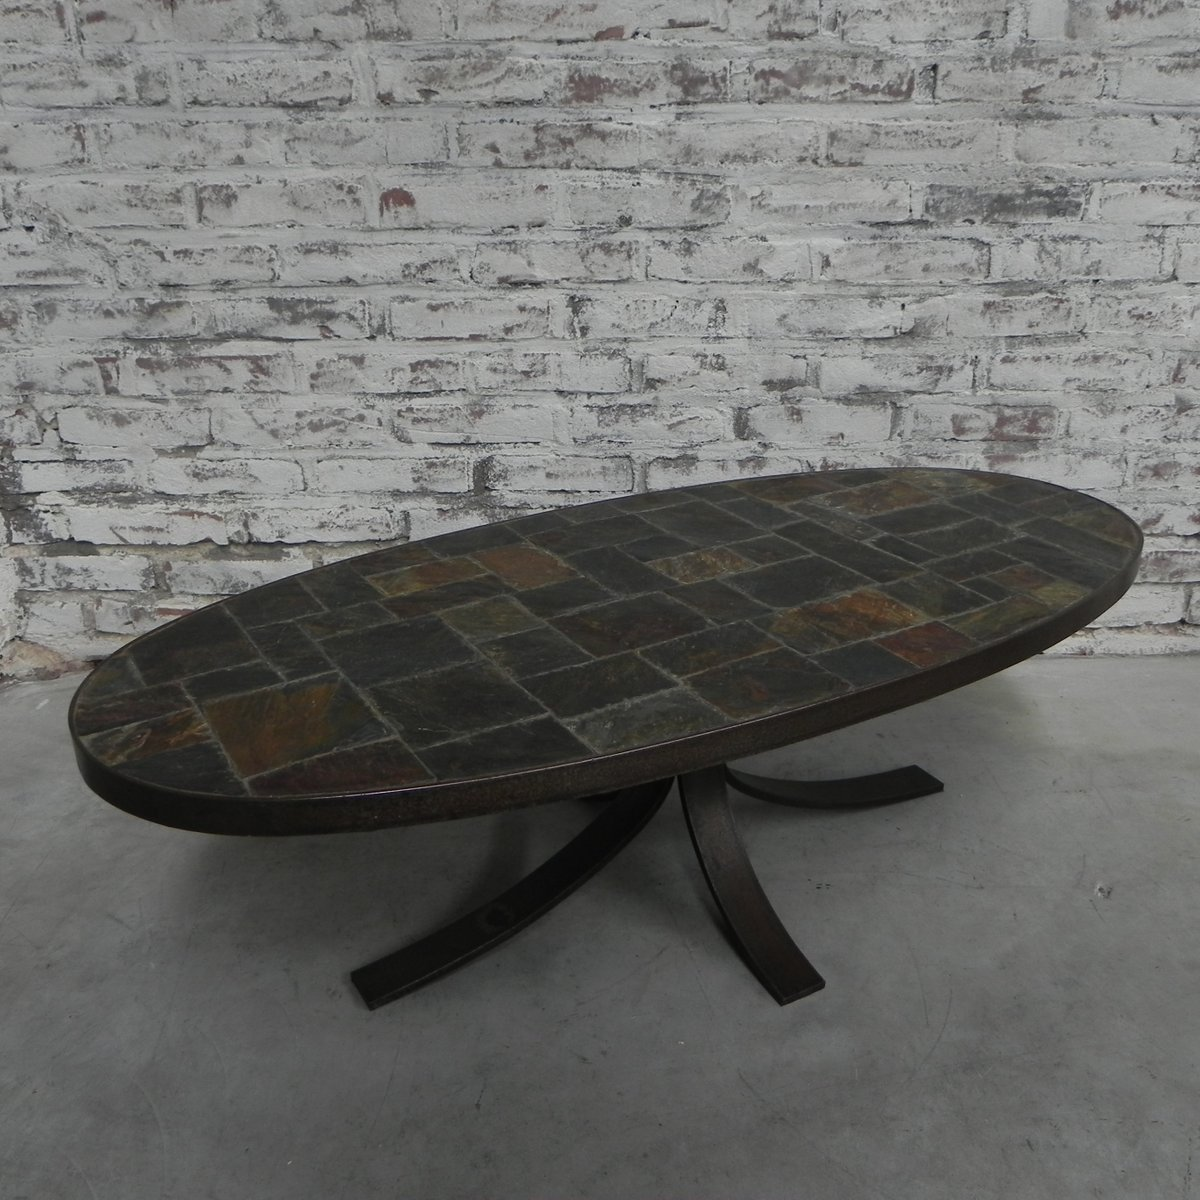 Slate And Glass Coffee Table For Sale: Vintage Coffee Table With Slate Top For Sale At Pamono